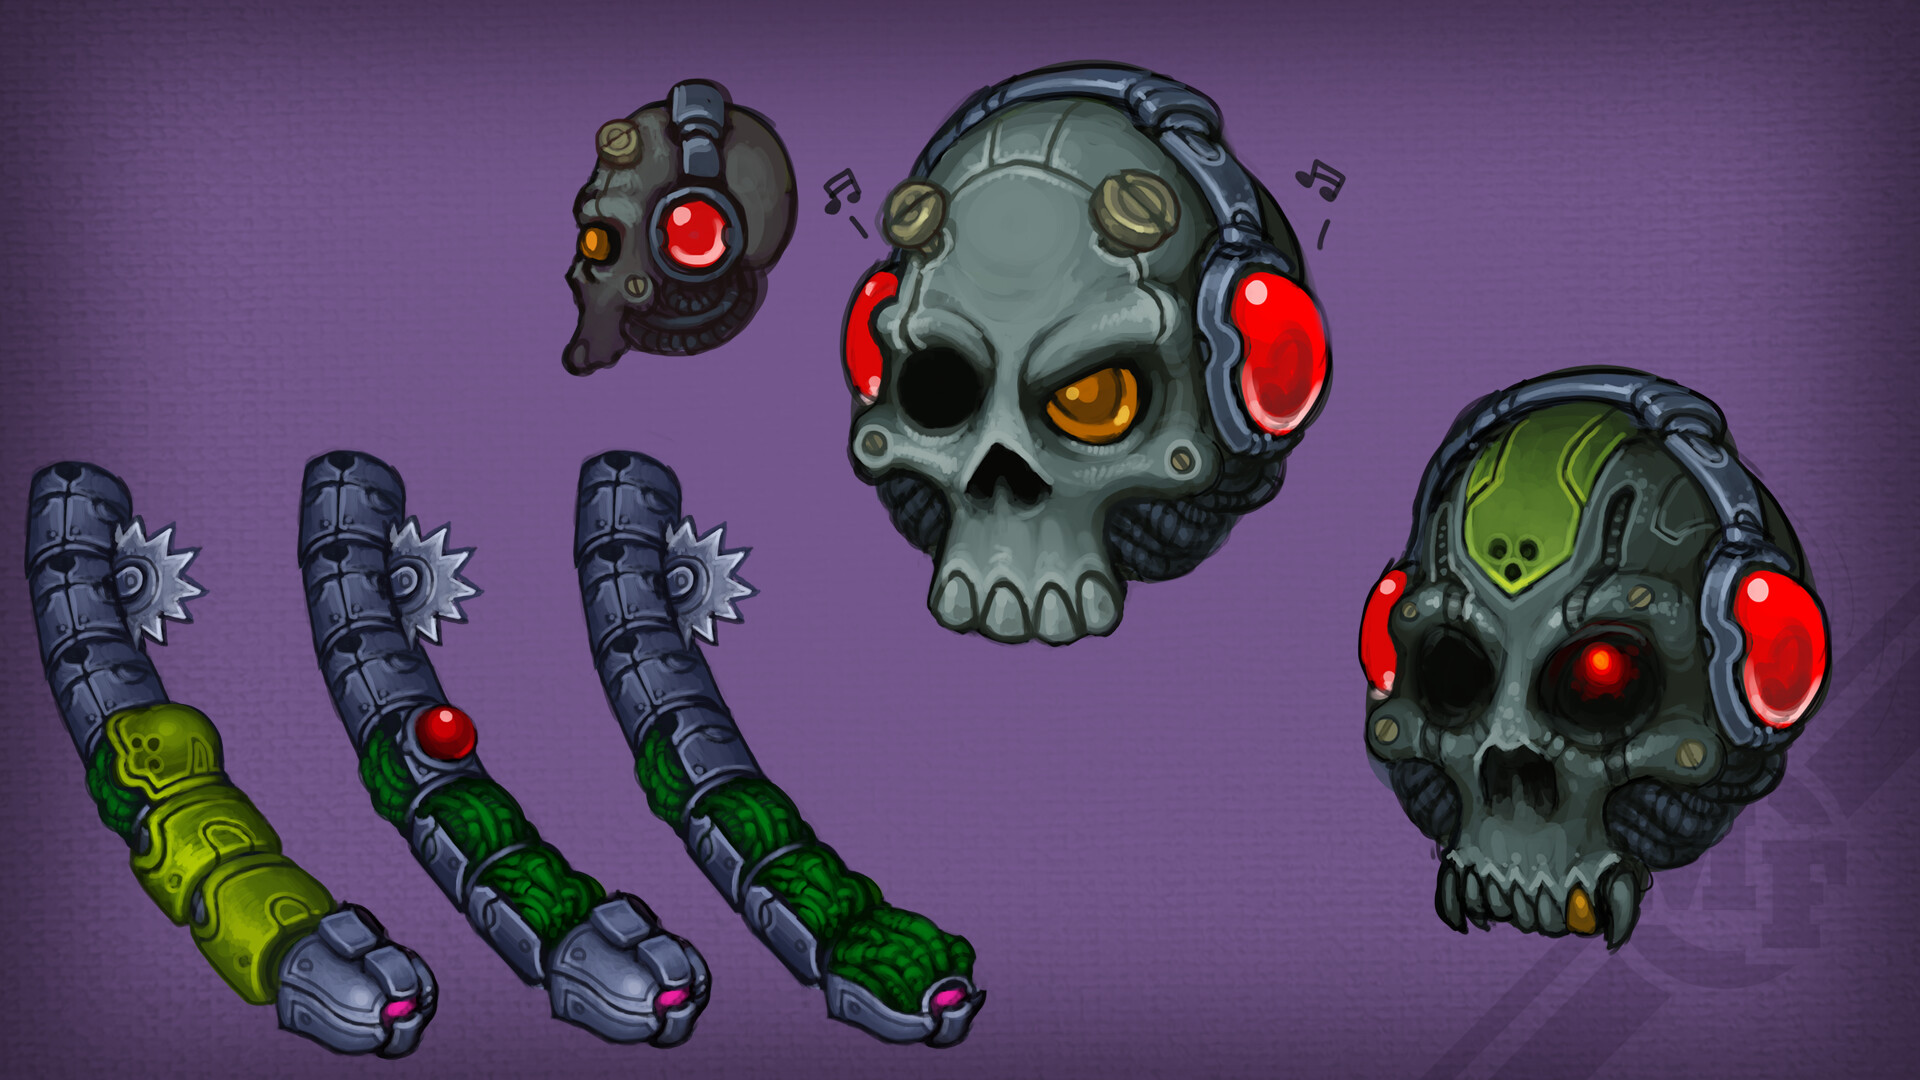 Skull Boss with worms